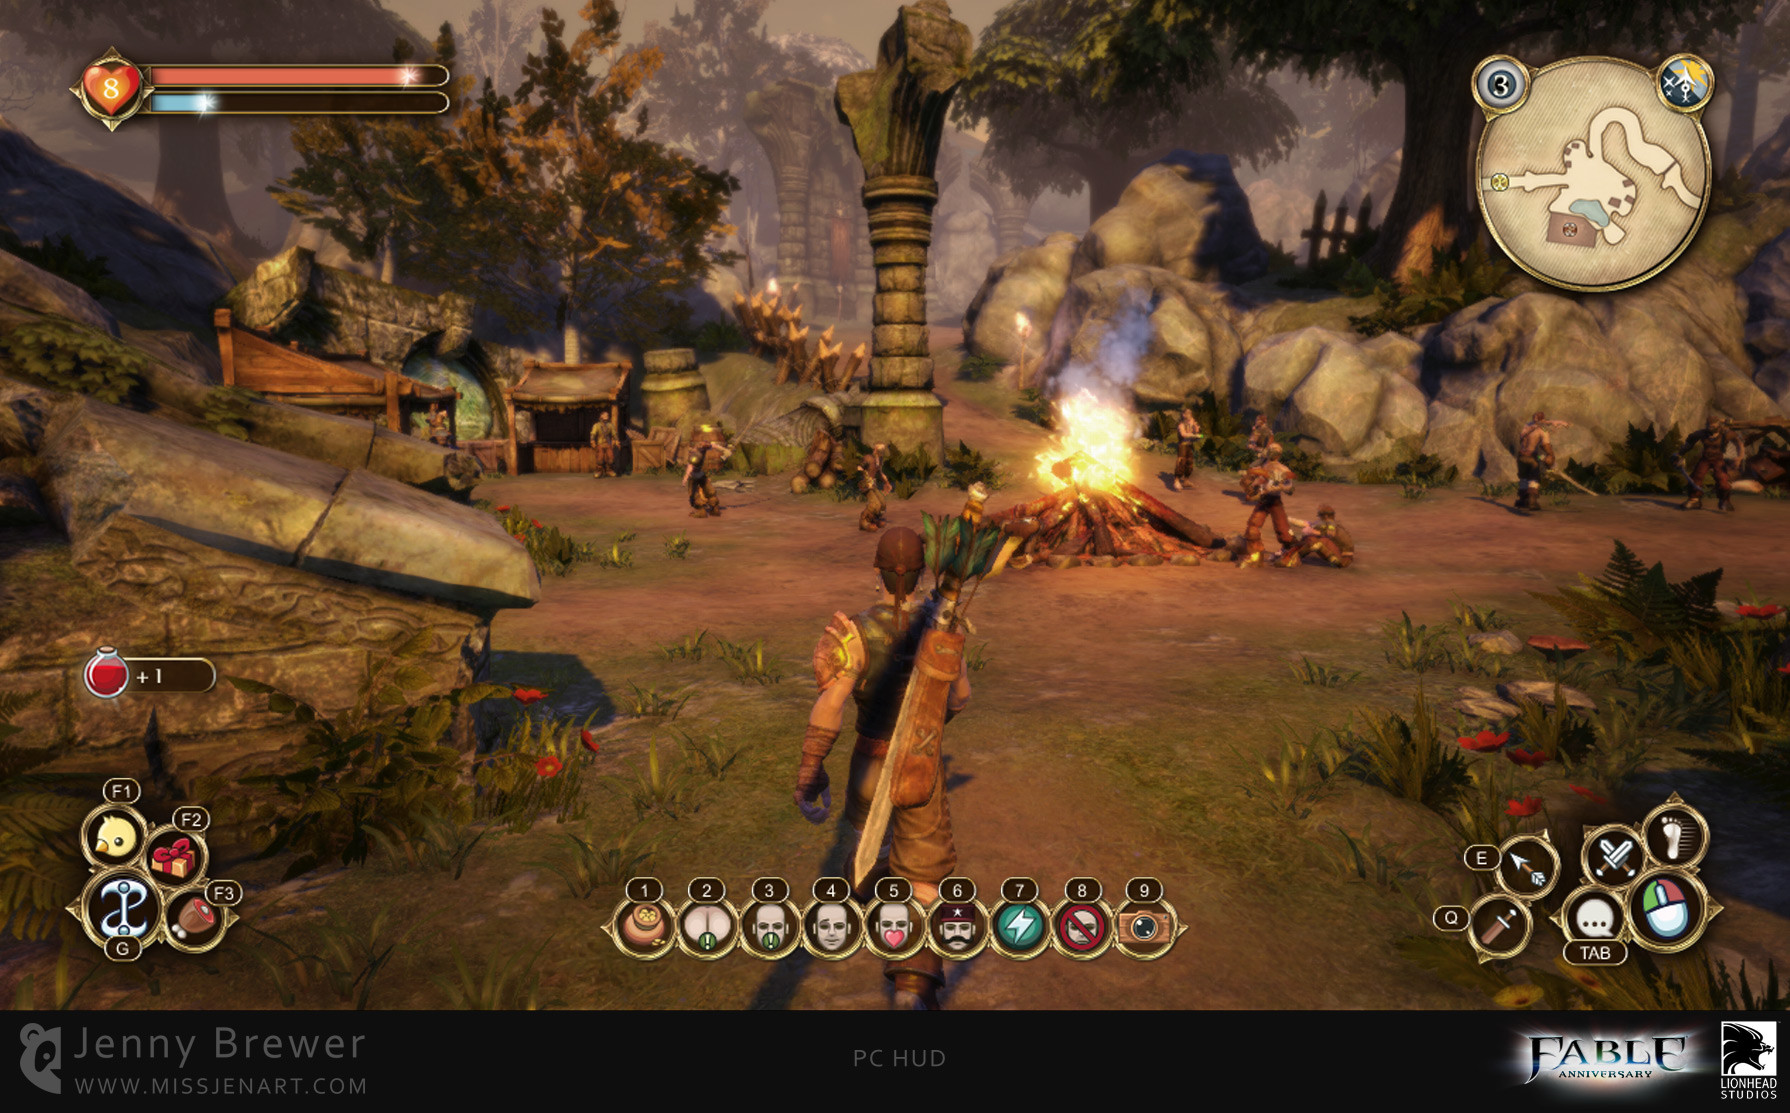 Jenny brewer fableanniversary hud pc